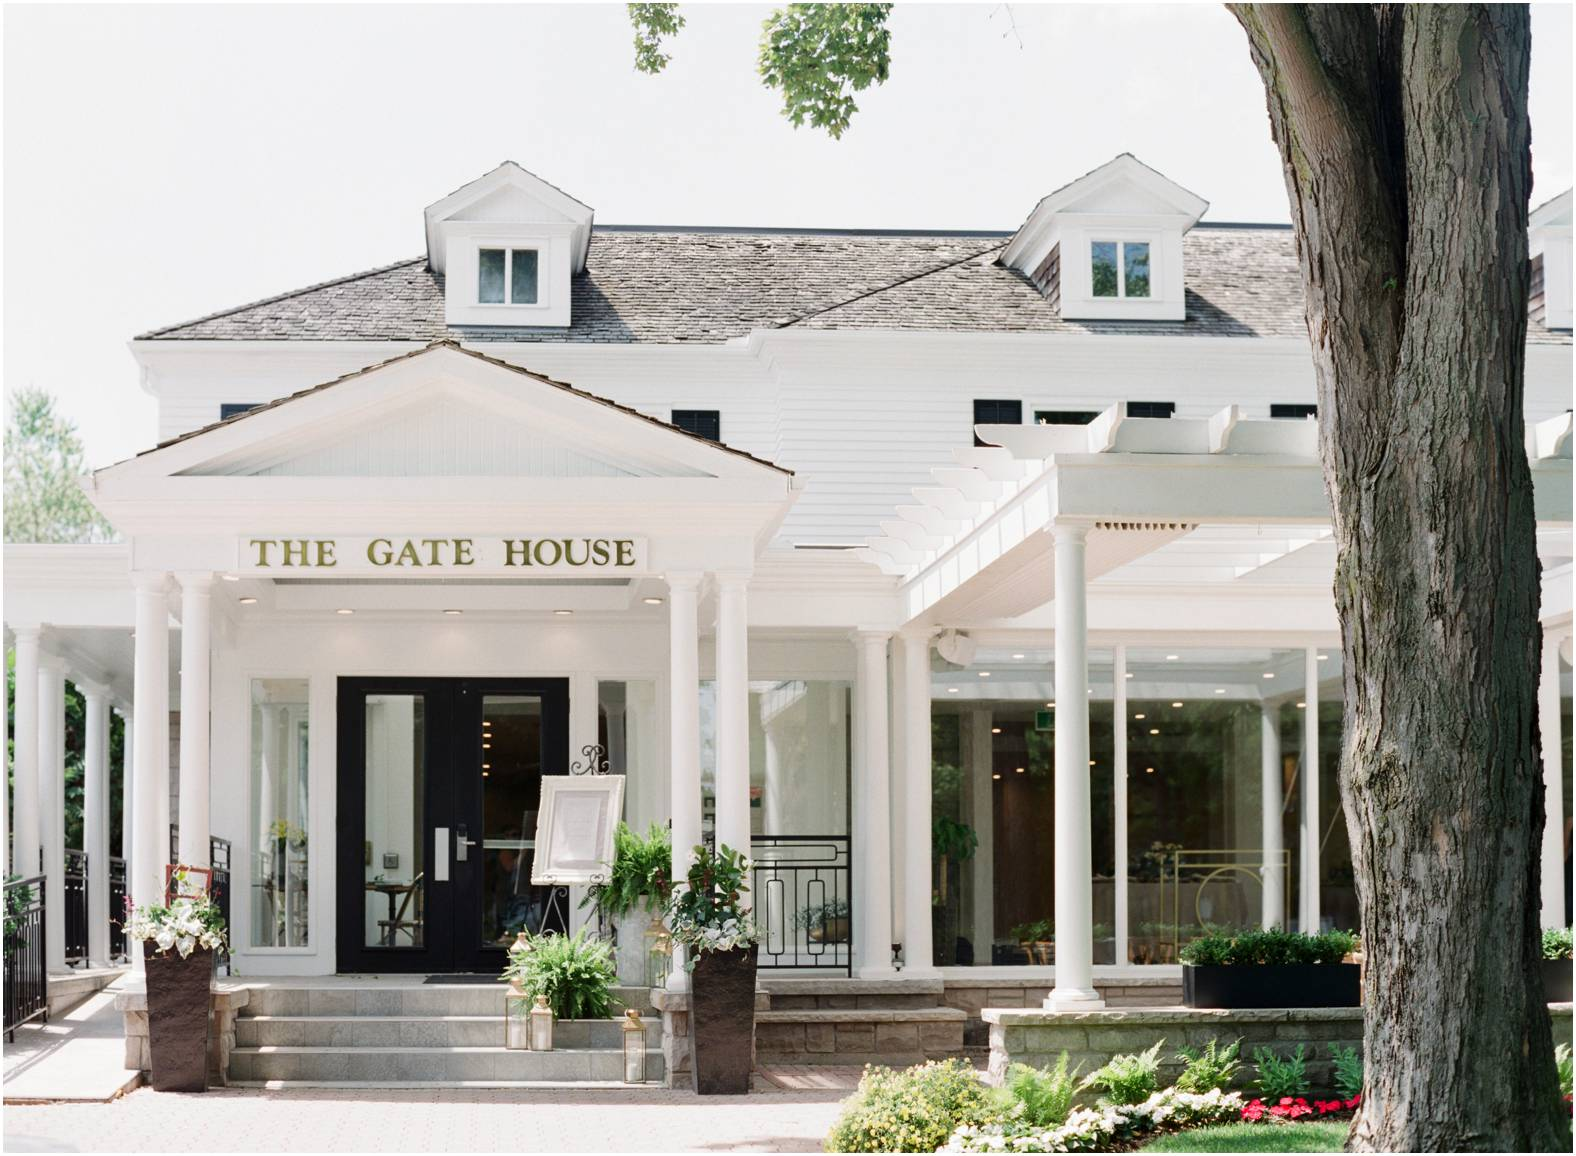 The Gate House luxury wedding venue now open in Niagara on the Lake